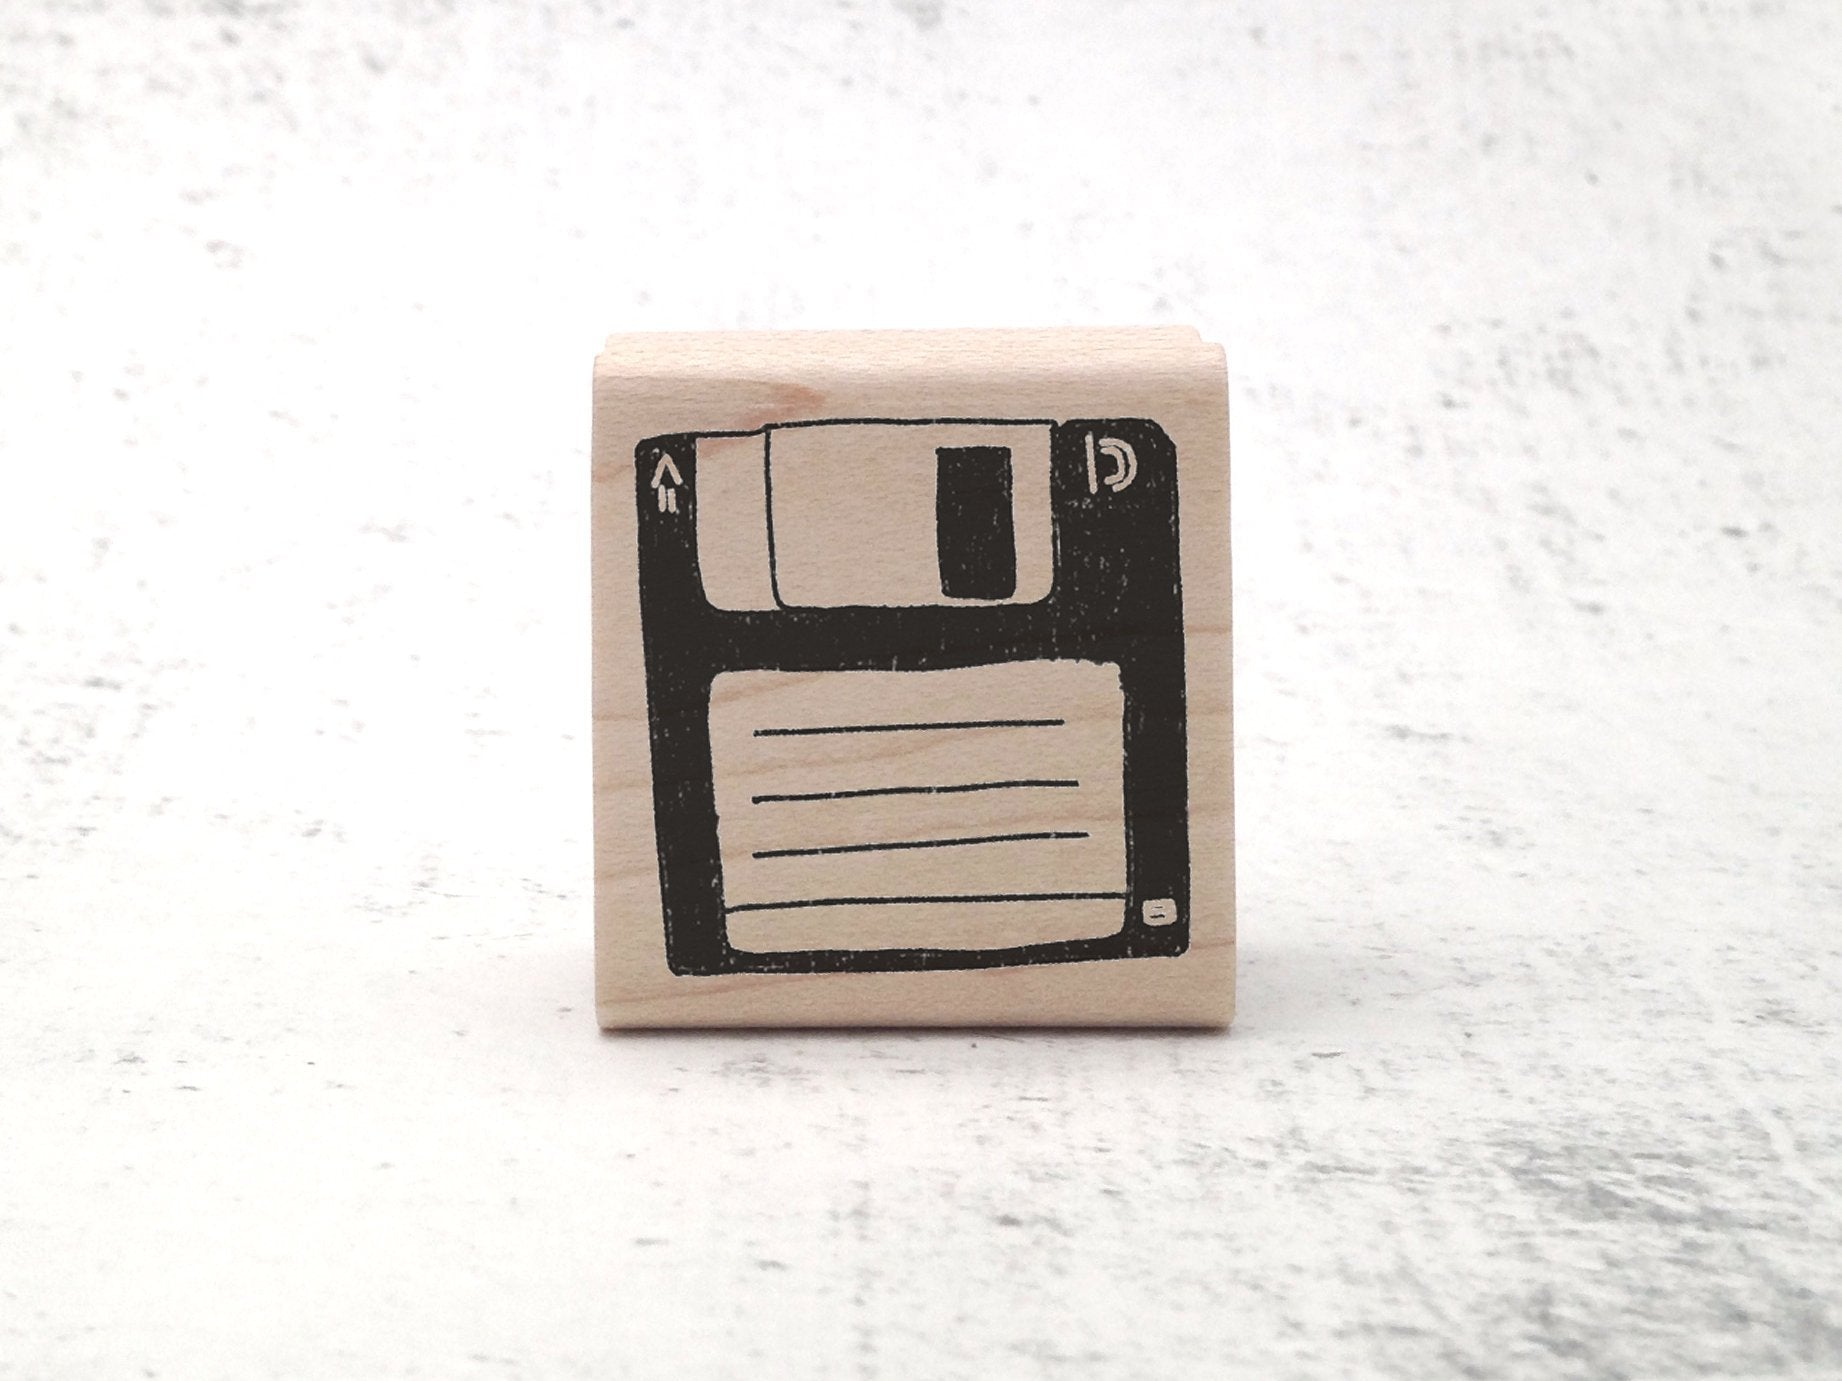 The Not So Floppy Disk Stamp - Retro Rubber Stamp - Diskette Stamp - 80s and 90s Rubber Stamps